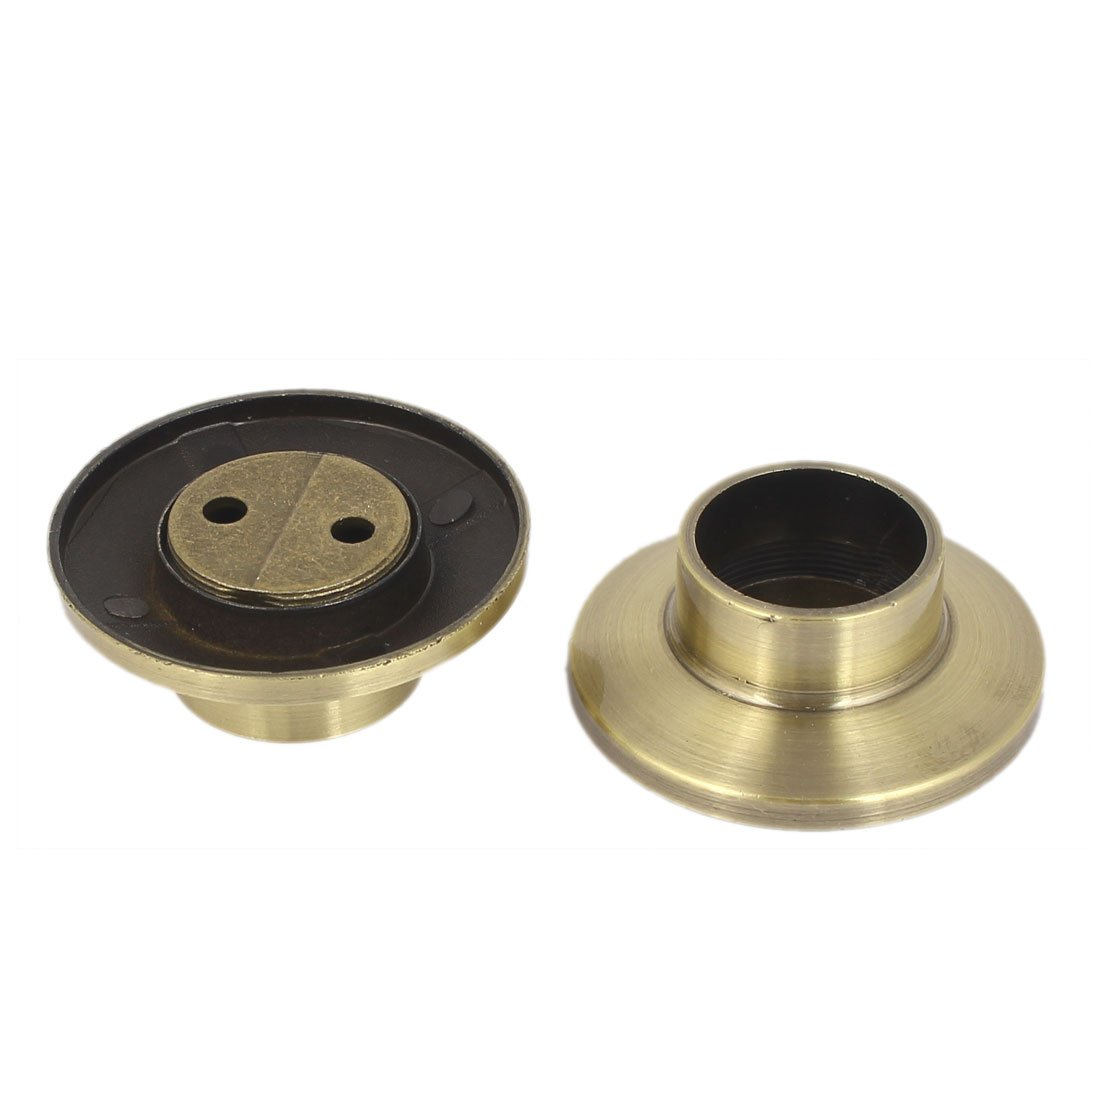 uxcell Metal Wardrobe Hanging Rail Rod End Support Bracket Socket Bronze Tone 2pcs by uxcell